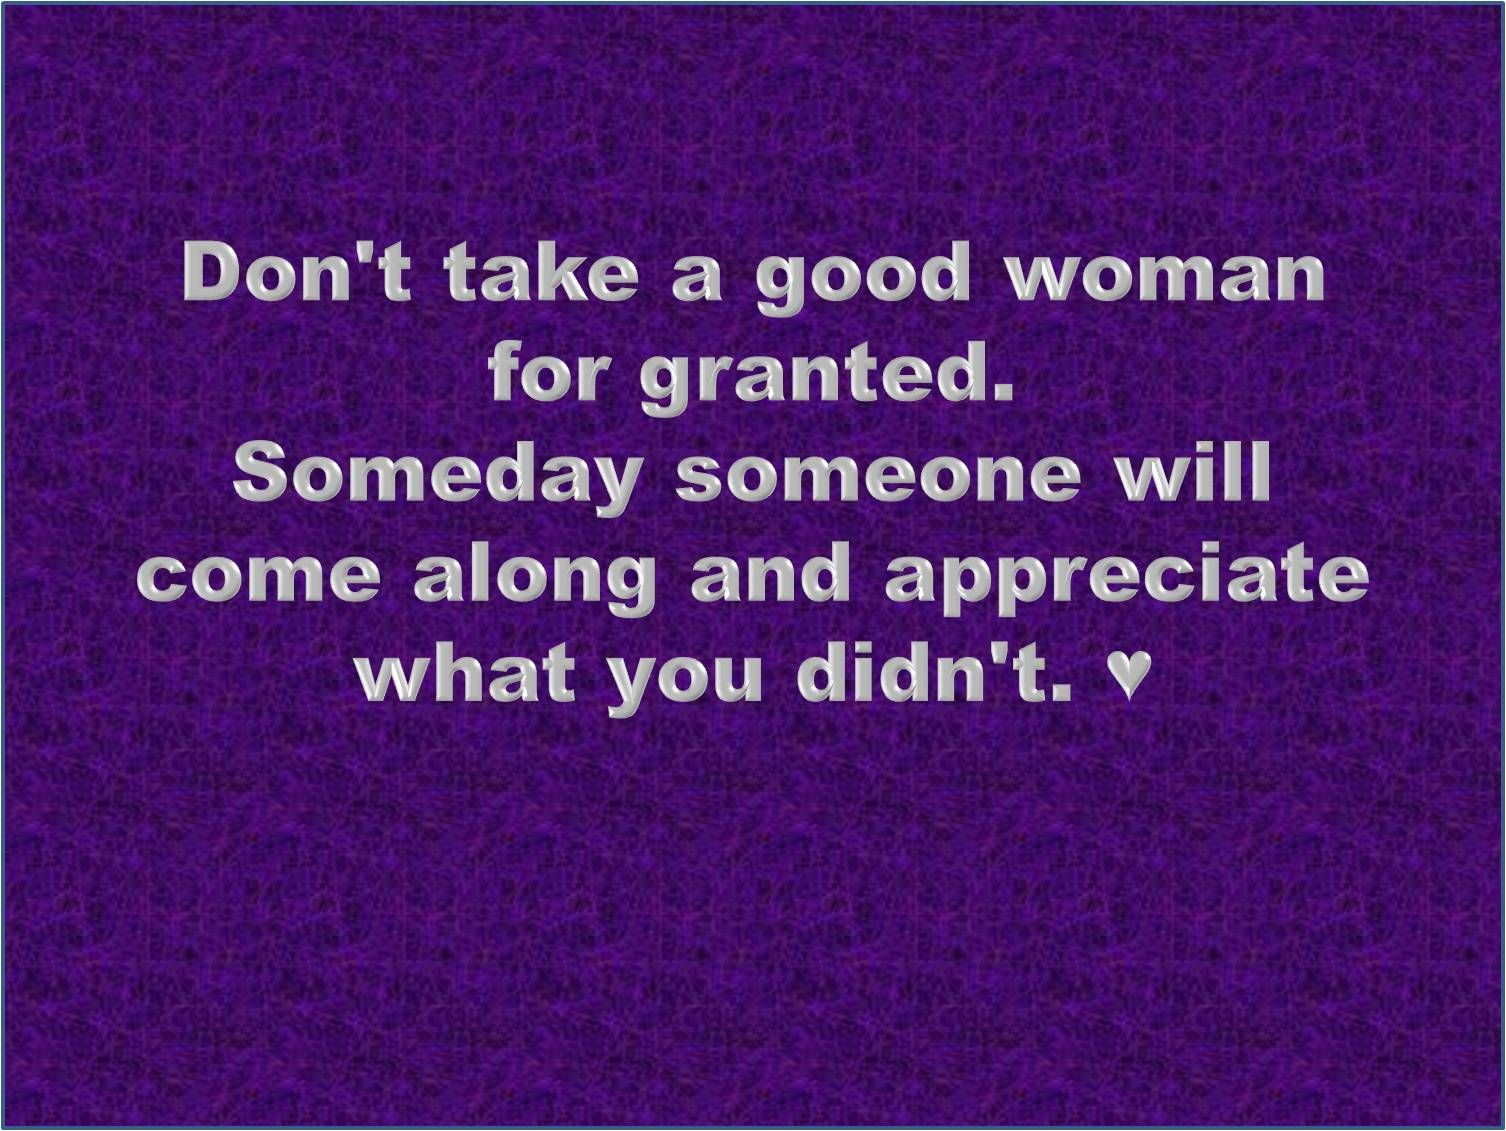 Coolest Quotes Don T Take A Good Woman For Granted Good Woman Quotes Granted Quotes Woman Quotes